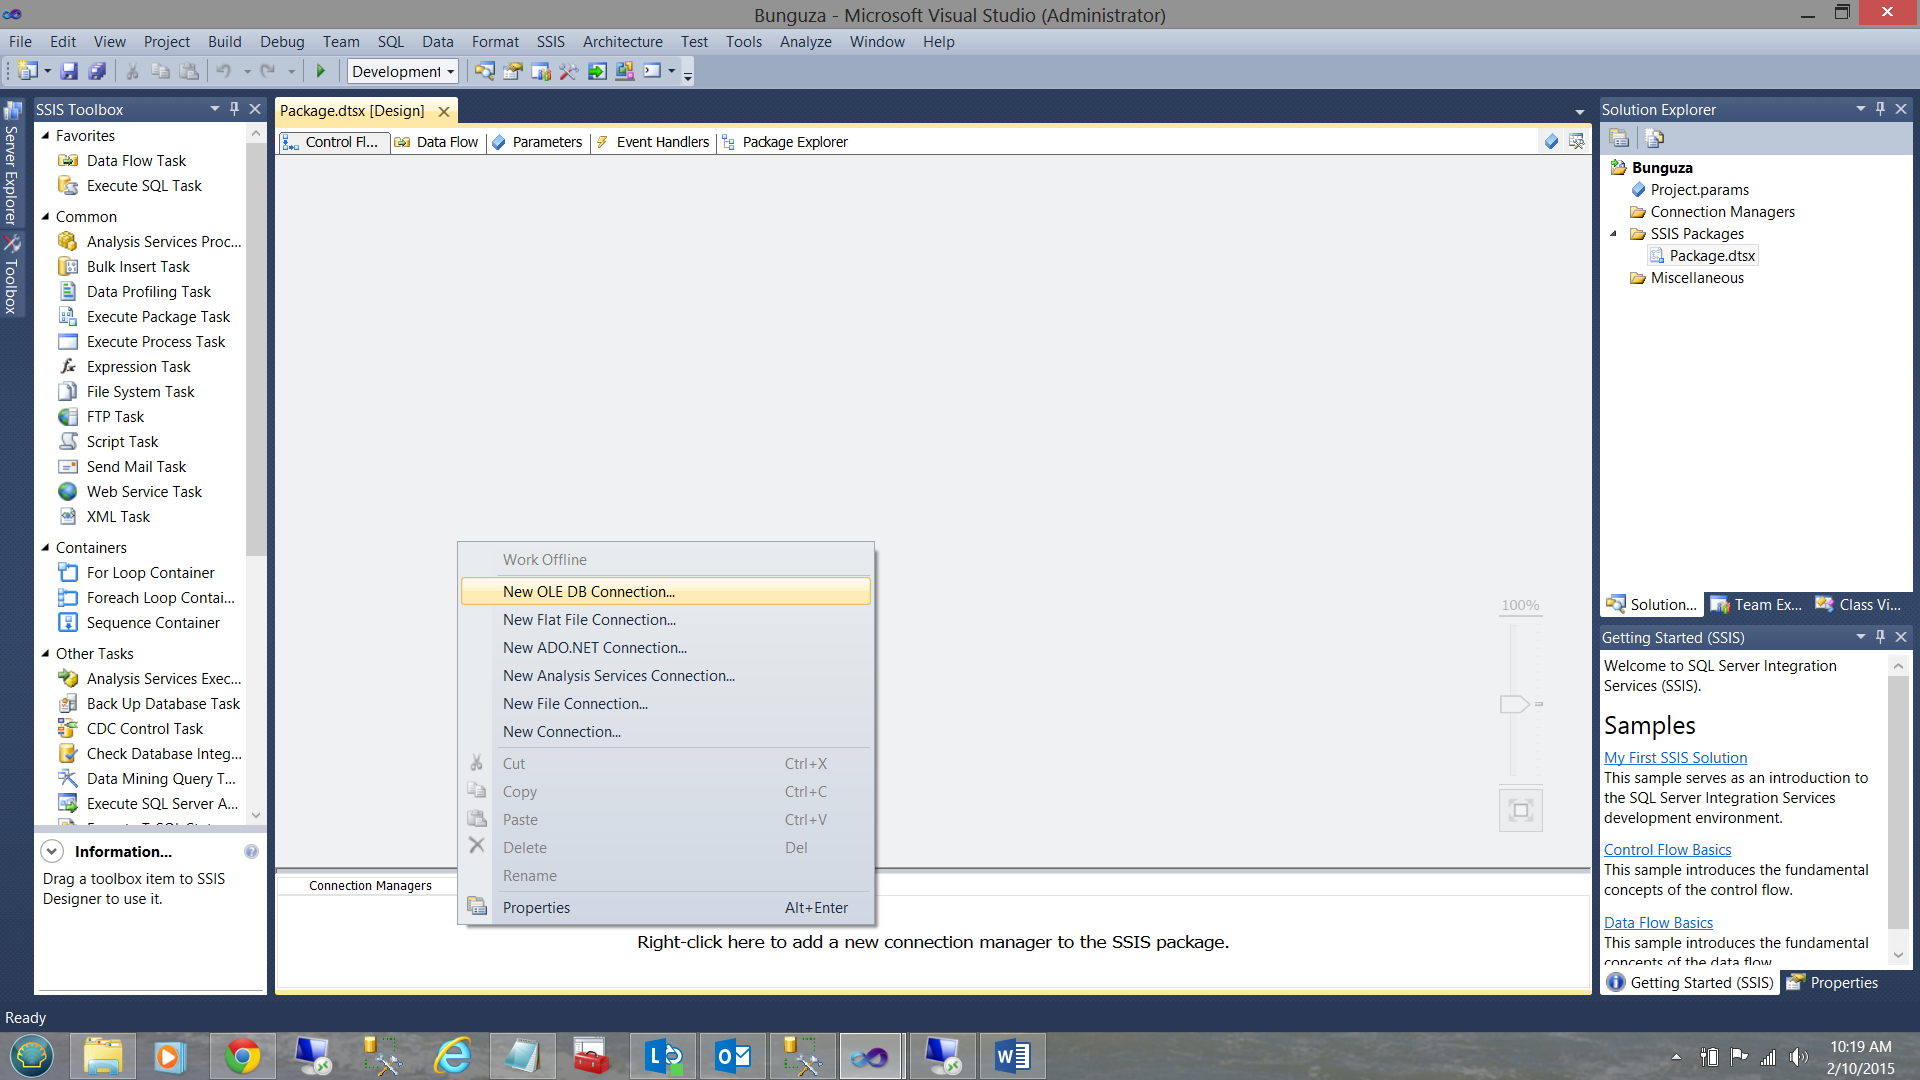 Creating dynamically generated CSV files containing SQL